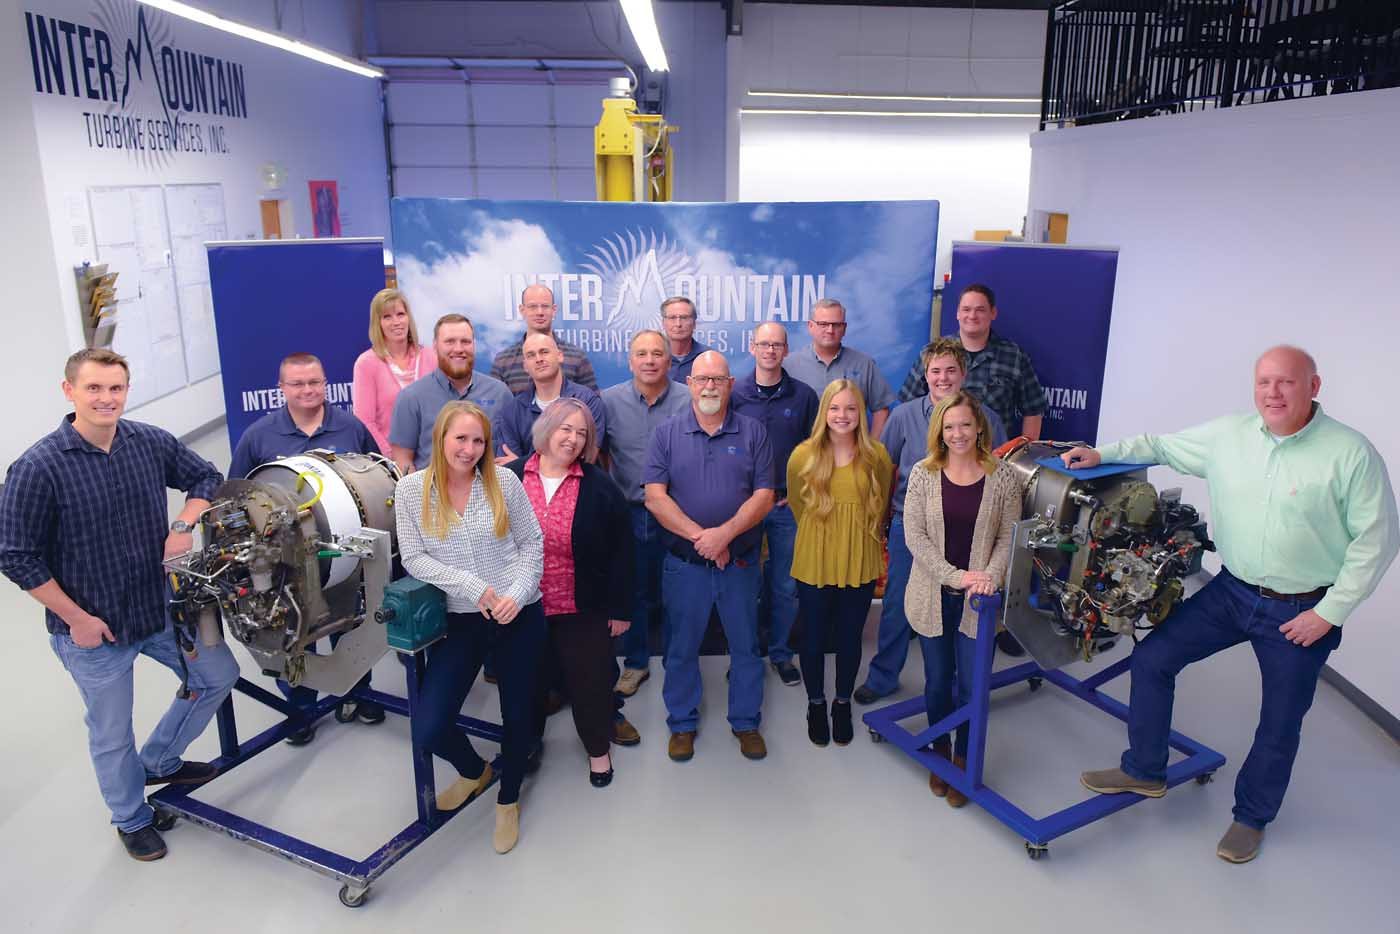 While the LTS101 once had a poor reputation for performance, the team at Intermountain Turbine Services has worked for 25 years to ensure aircraft fly longer, farther and better with the engine. Mike Reyno Photo